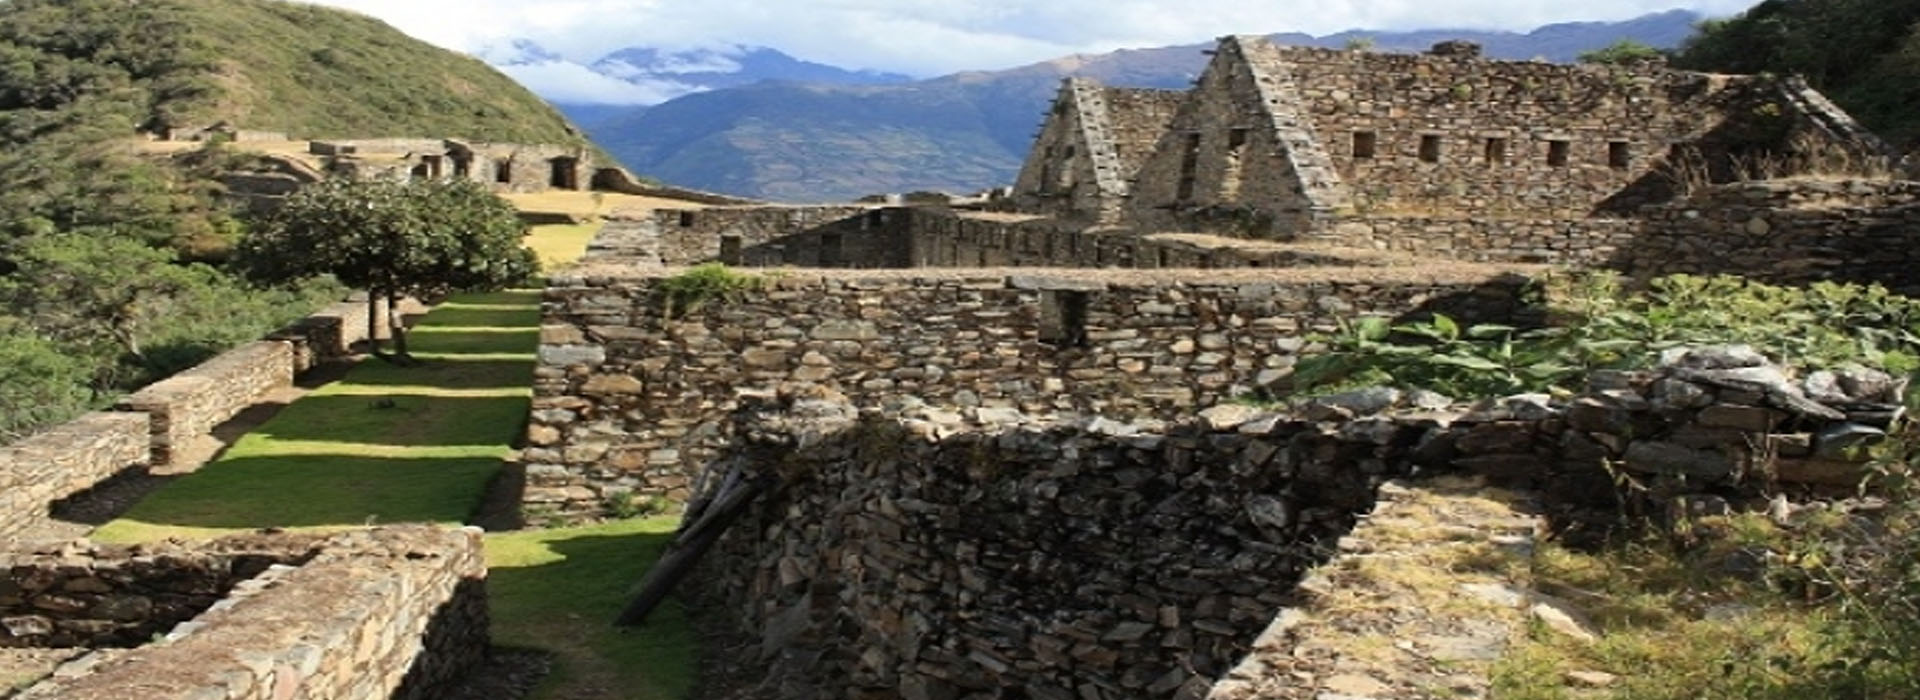 Choquequirao Trek 7 days / 6 nights